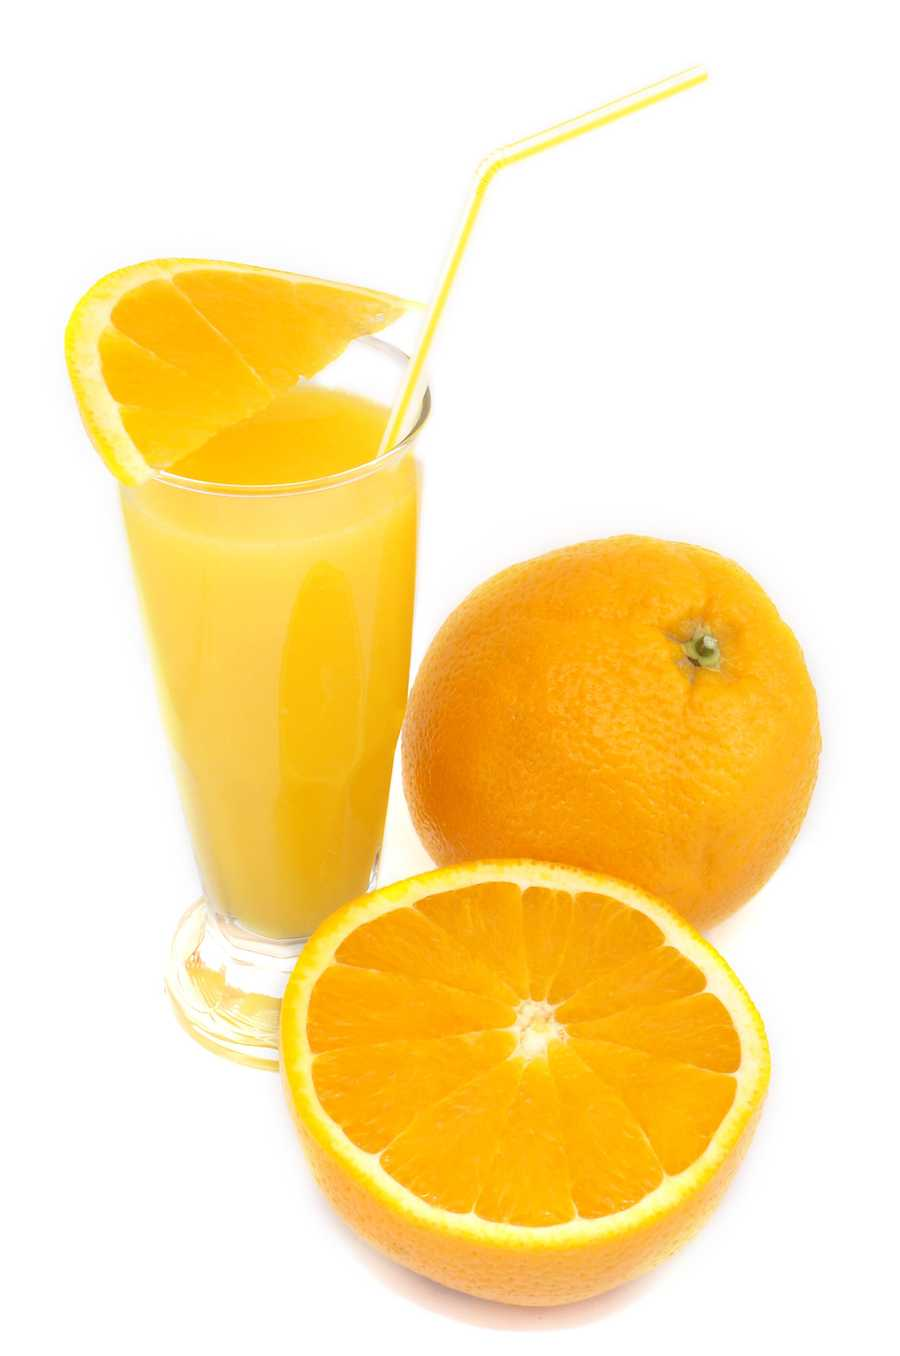 Experts recommend eating a breakfast high in nutrients, including items like orange juice, grapefruit, and strawberries, which provide vitamin C.